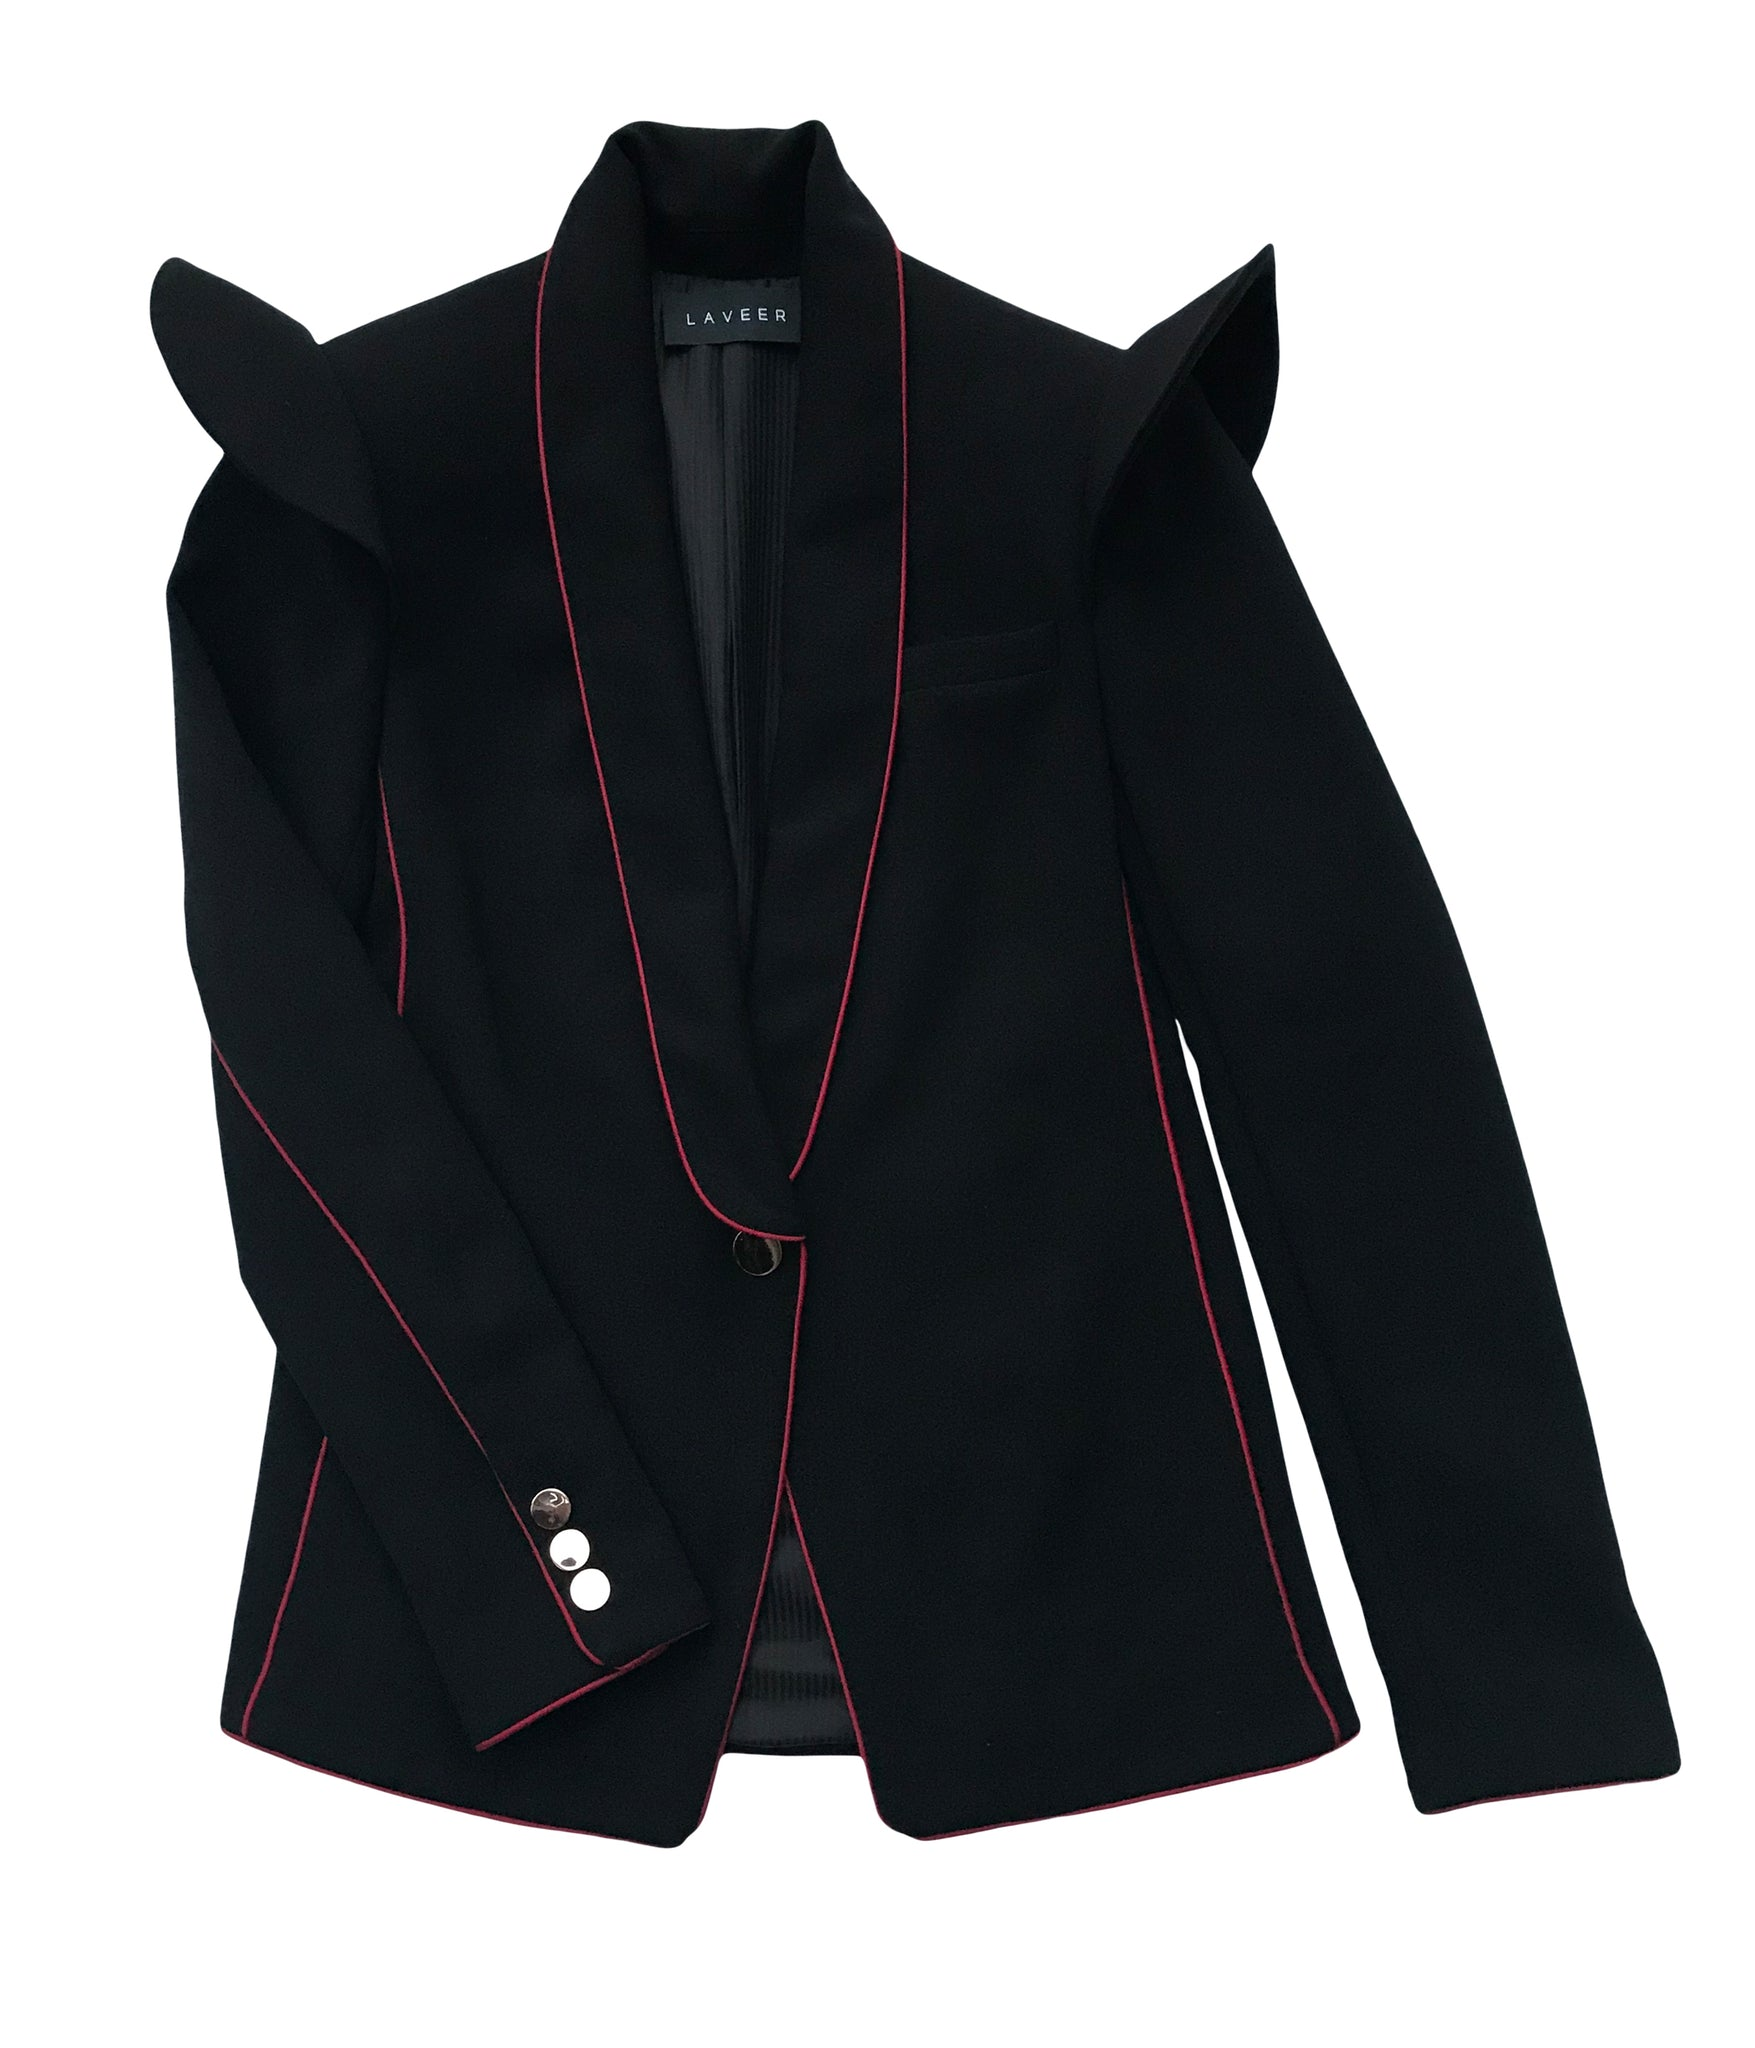 LAVEER Ruffle Tux Blazer In Black / Oxblood